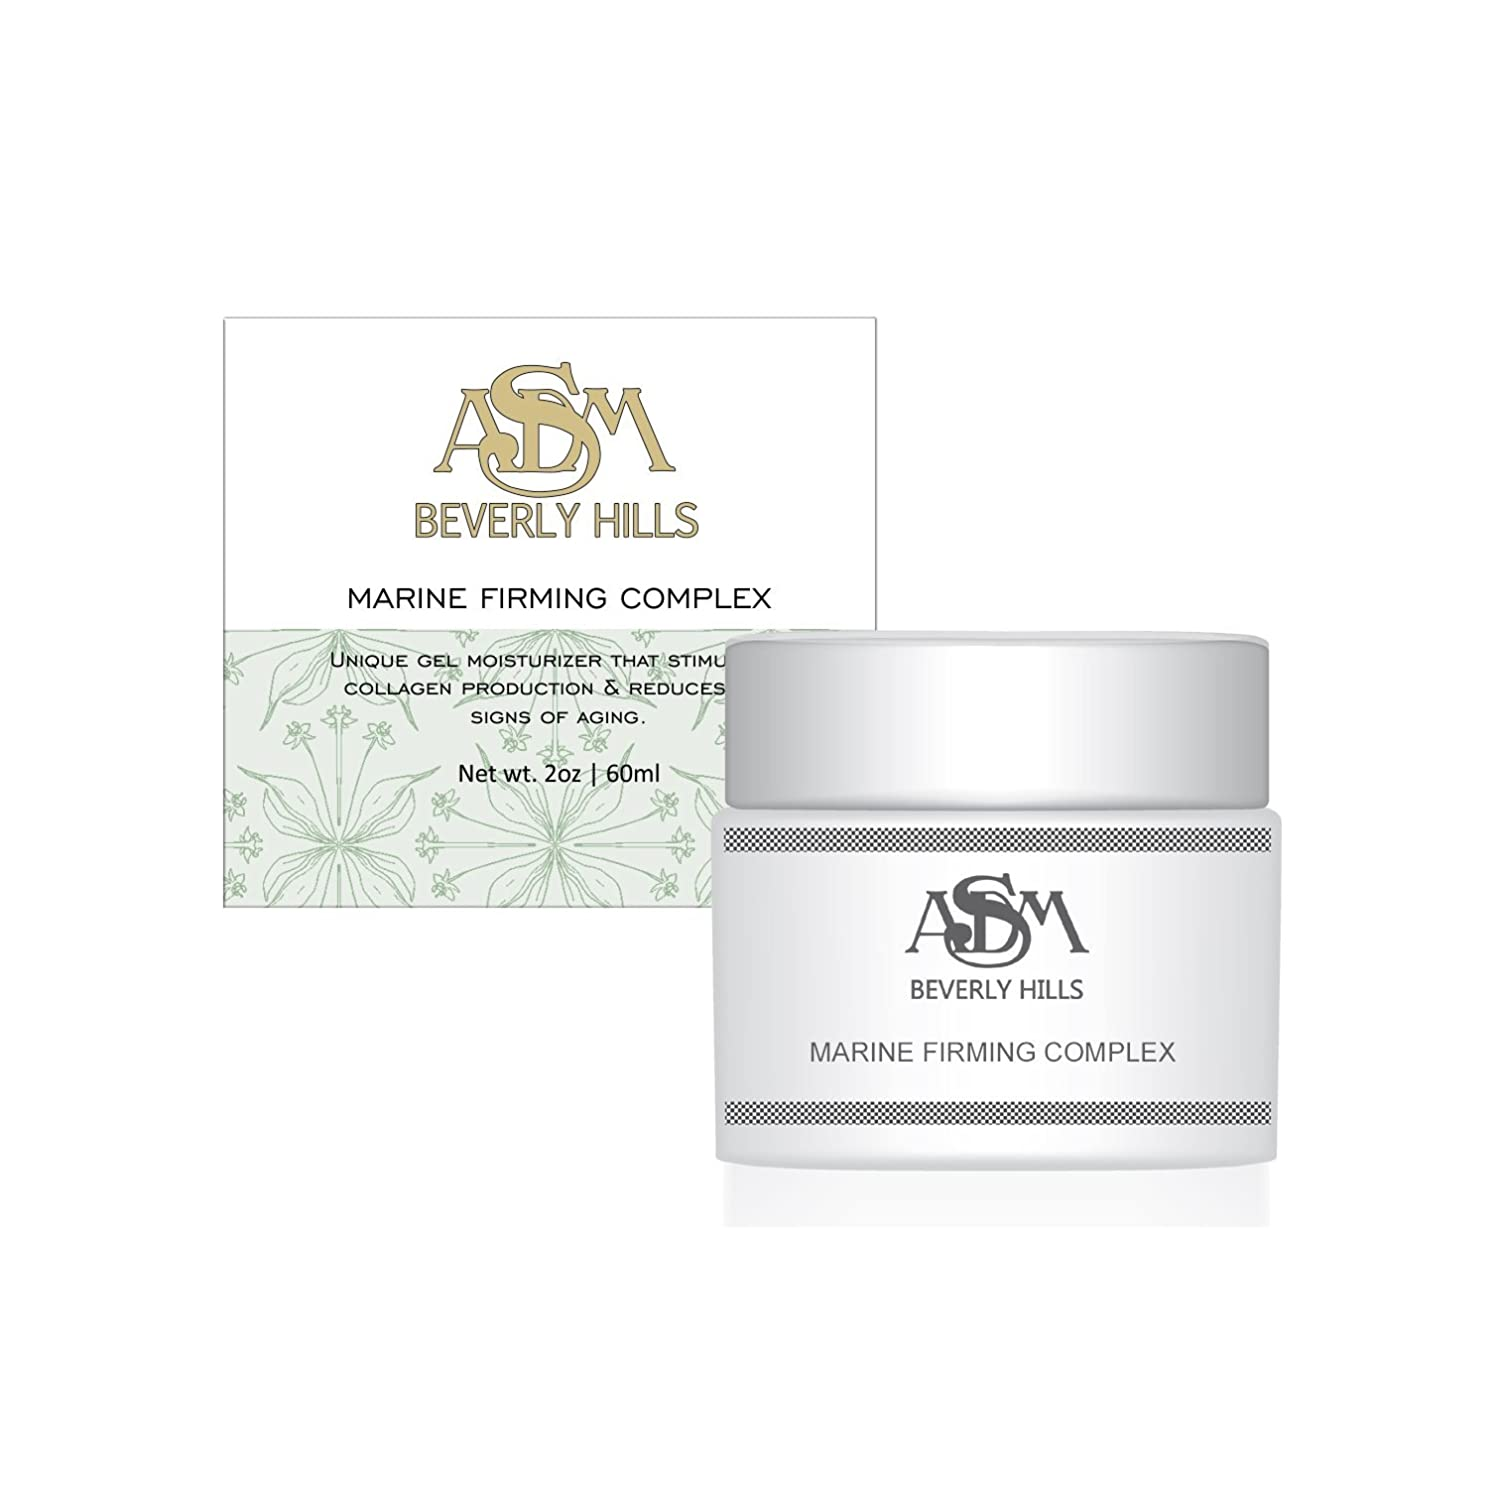 Beverly hills lift and firm cream reviews - Amazon Com Marine Cream Collagen Cream Anti Aging Cream Asdm Beverly Hills Facial Moisturizers Beauty